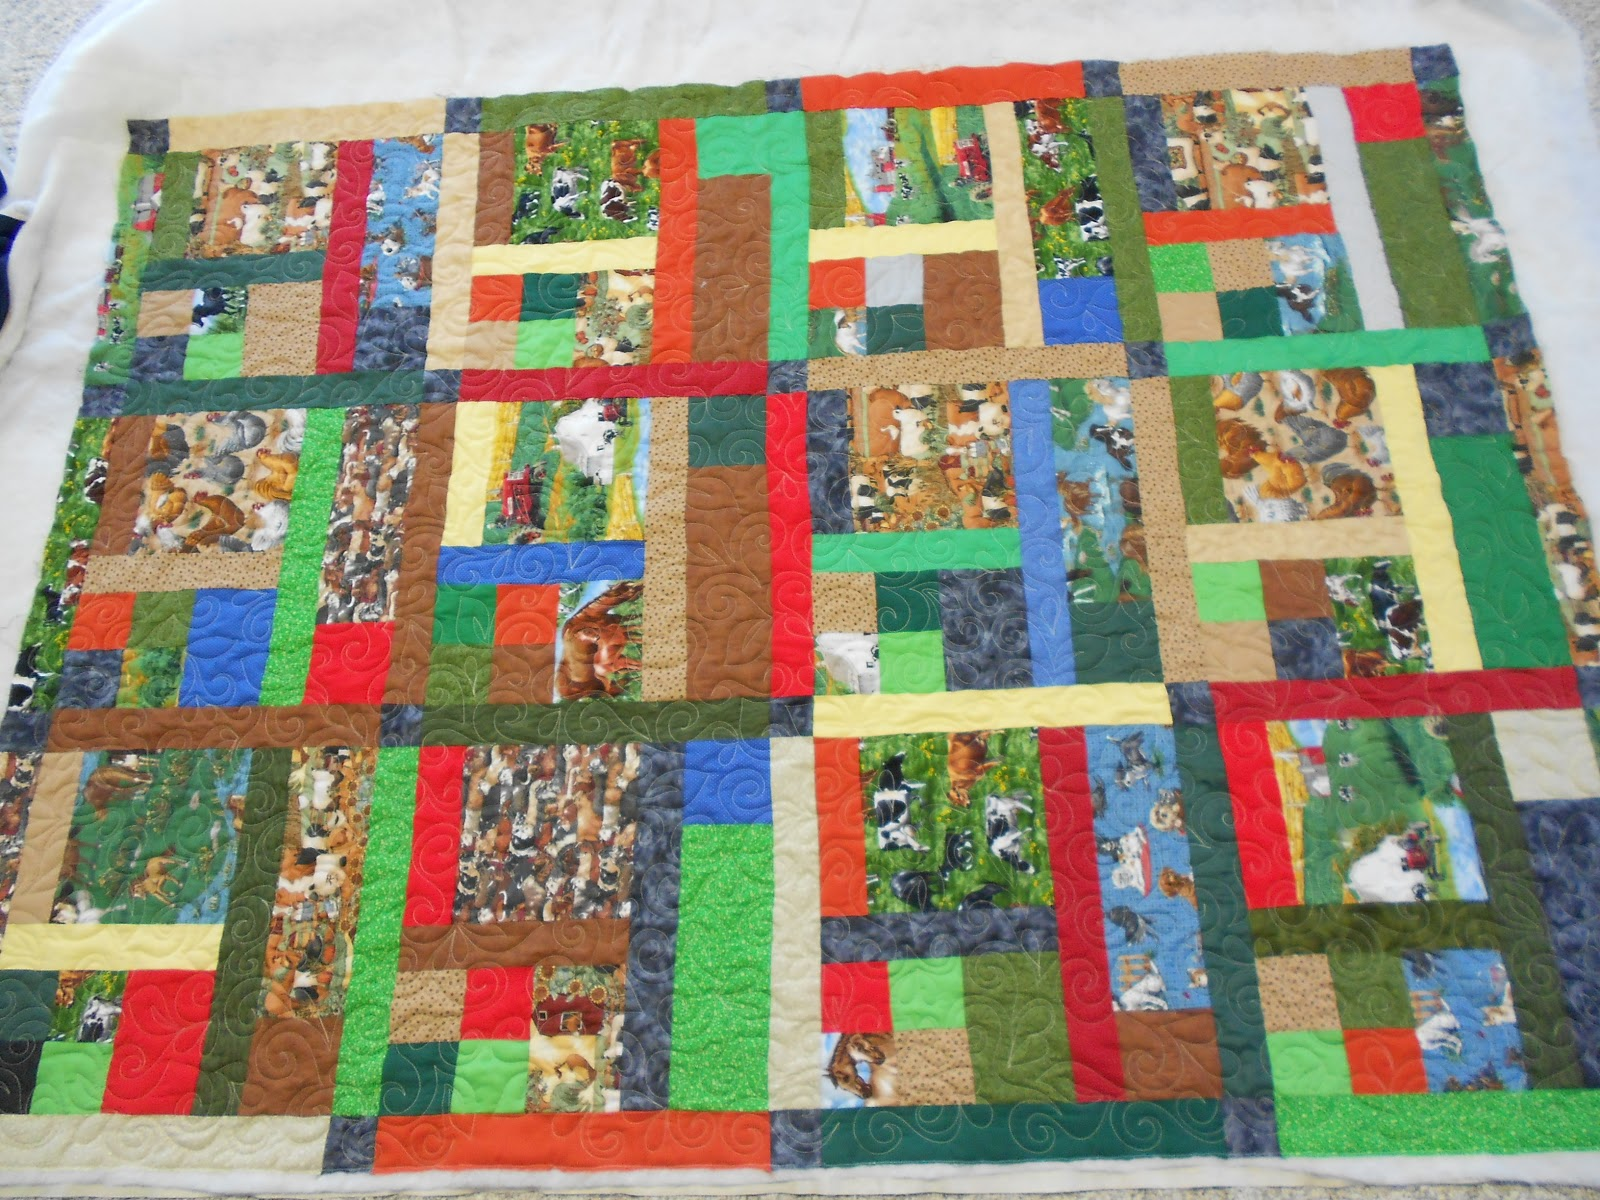 Down To Sew: A farm quilt & QCR block #2